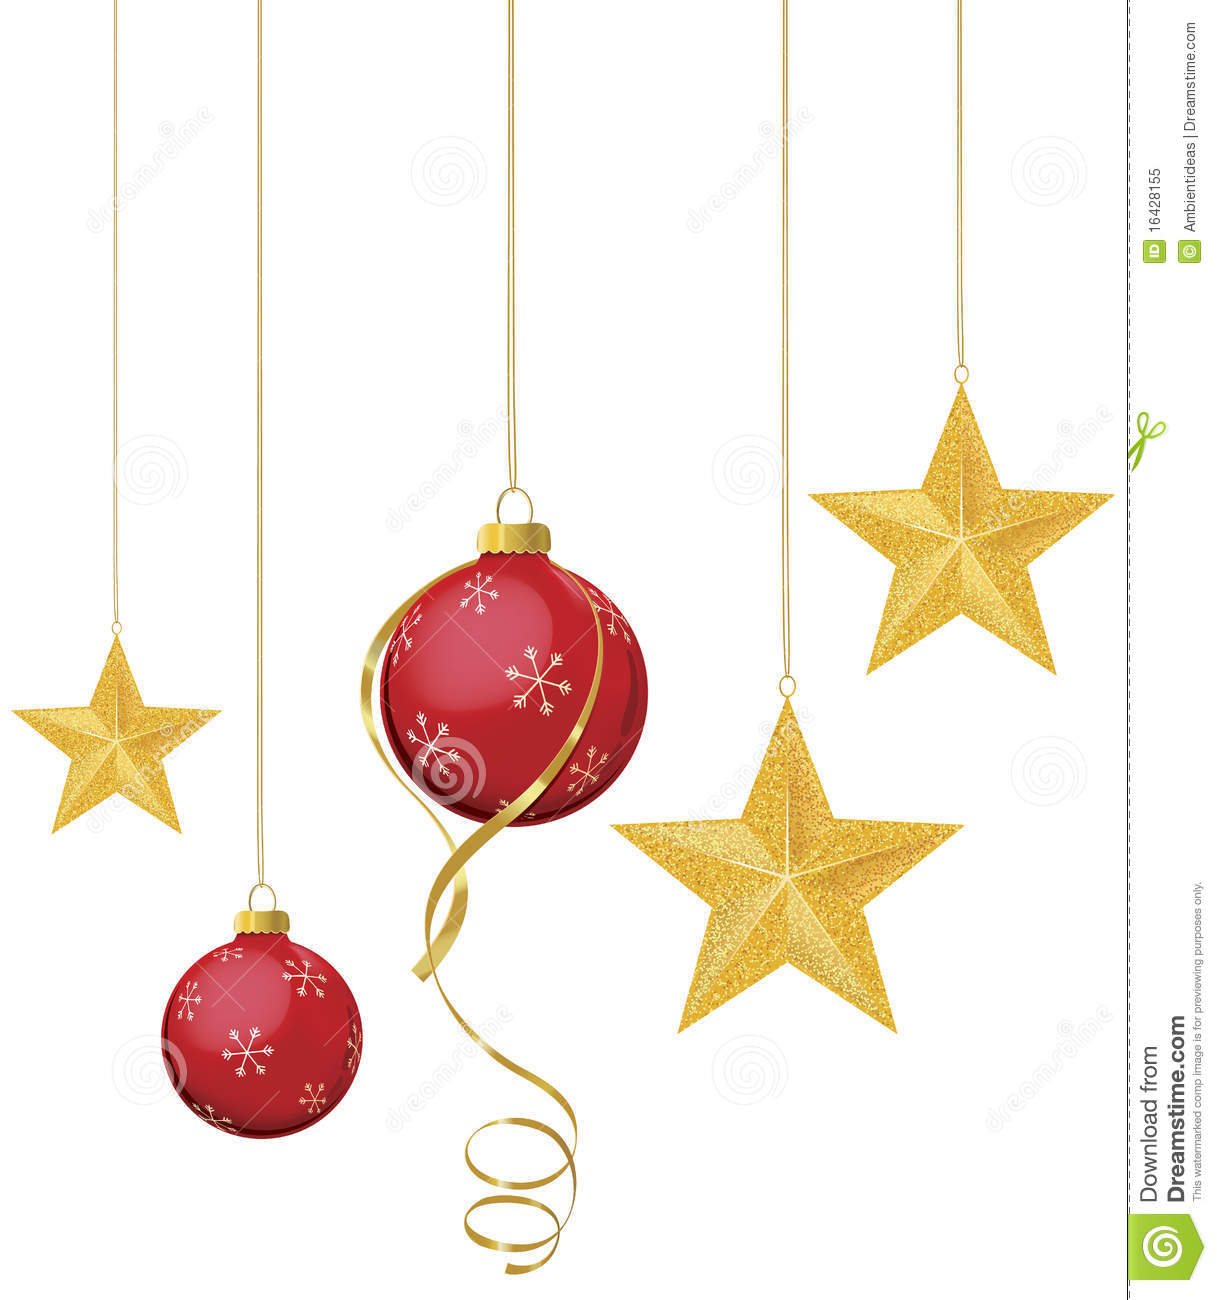 Gold and red ornaments - Red Ornaments With Gold Stars